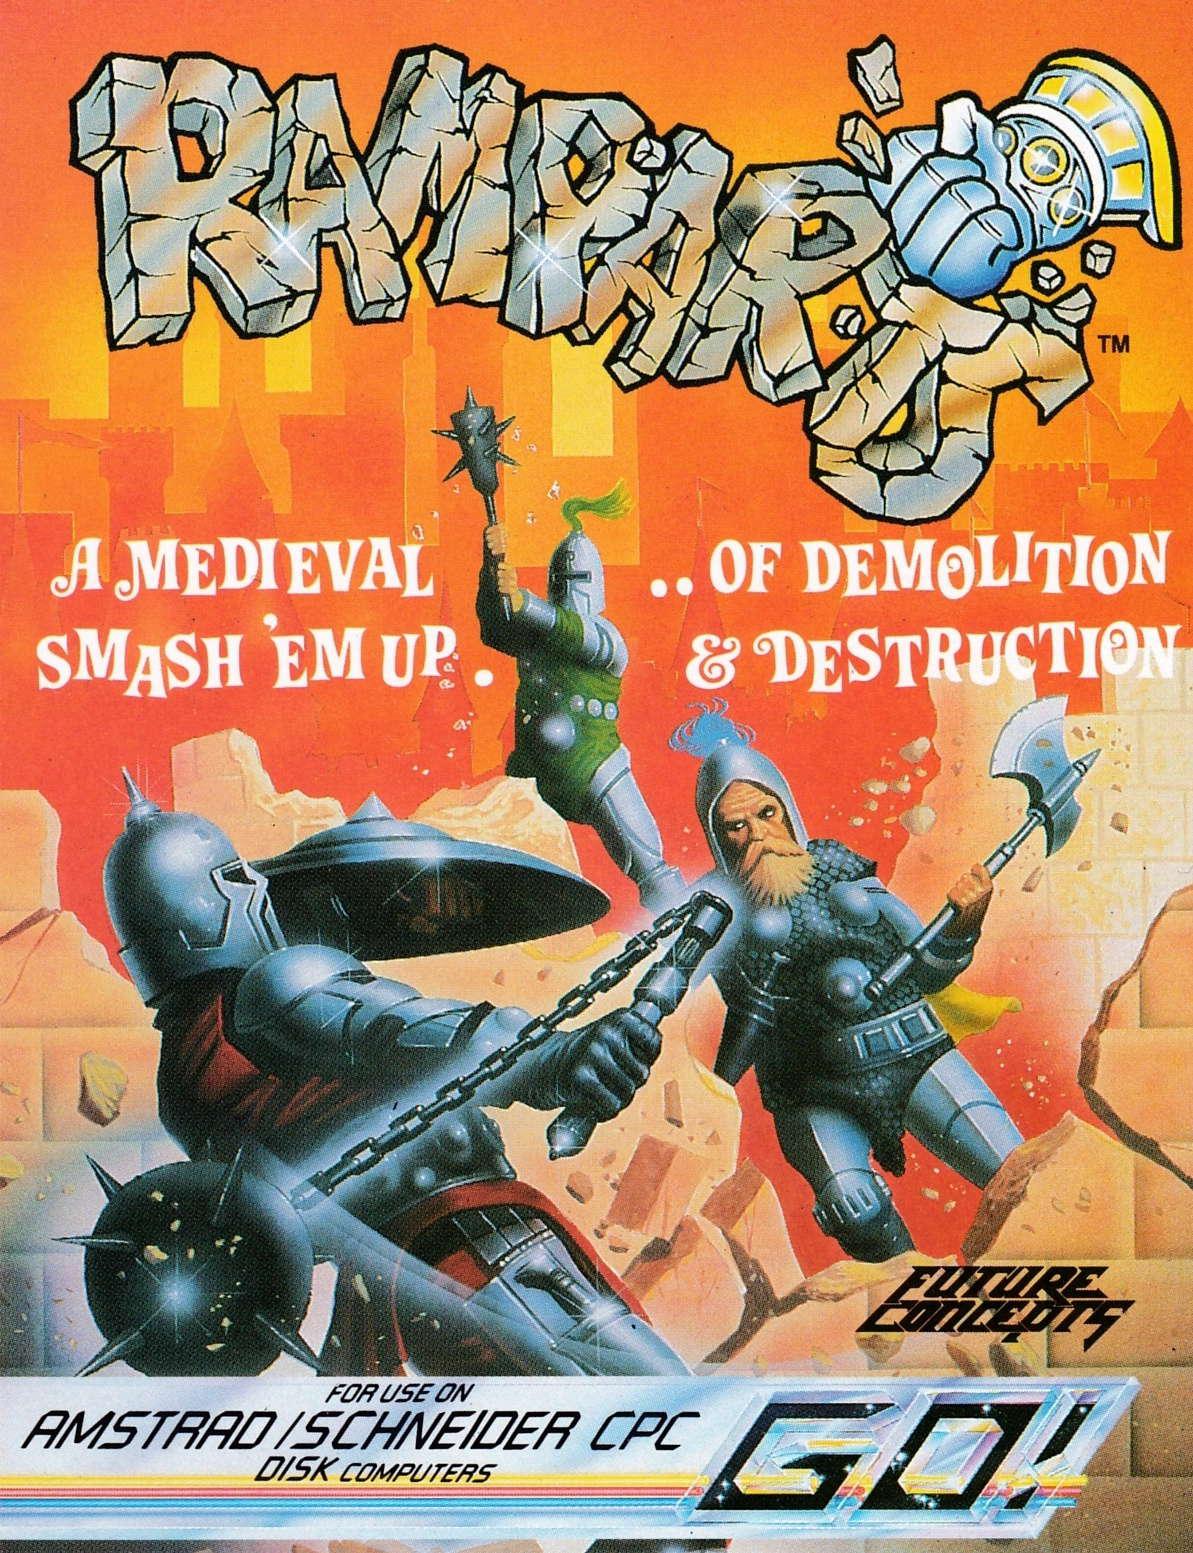 cover of the Amstrad CPC game Ramparts  by GameBase CPC